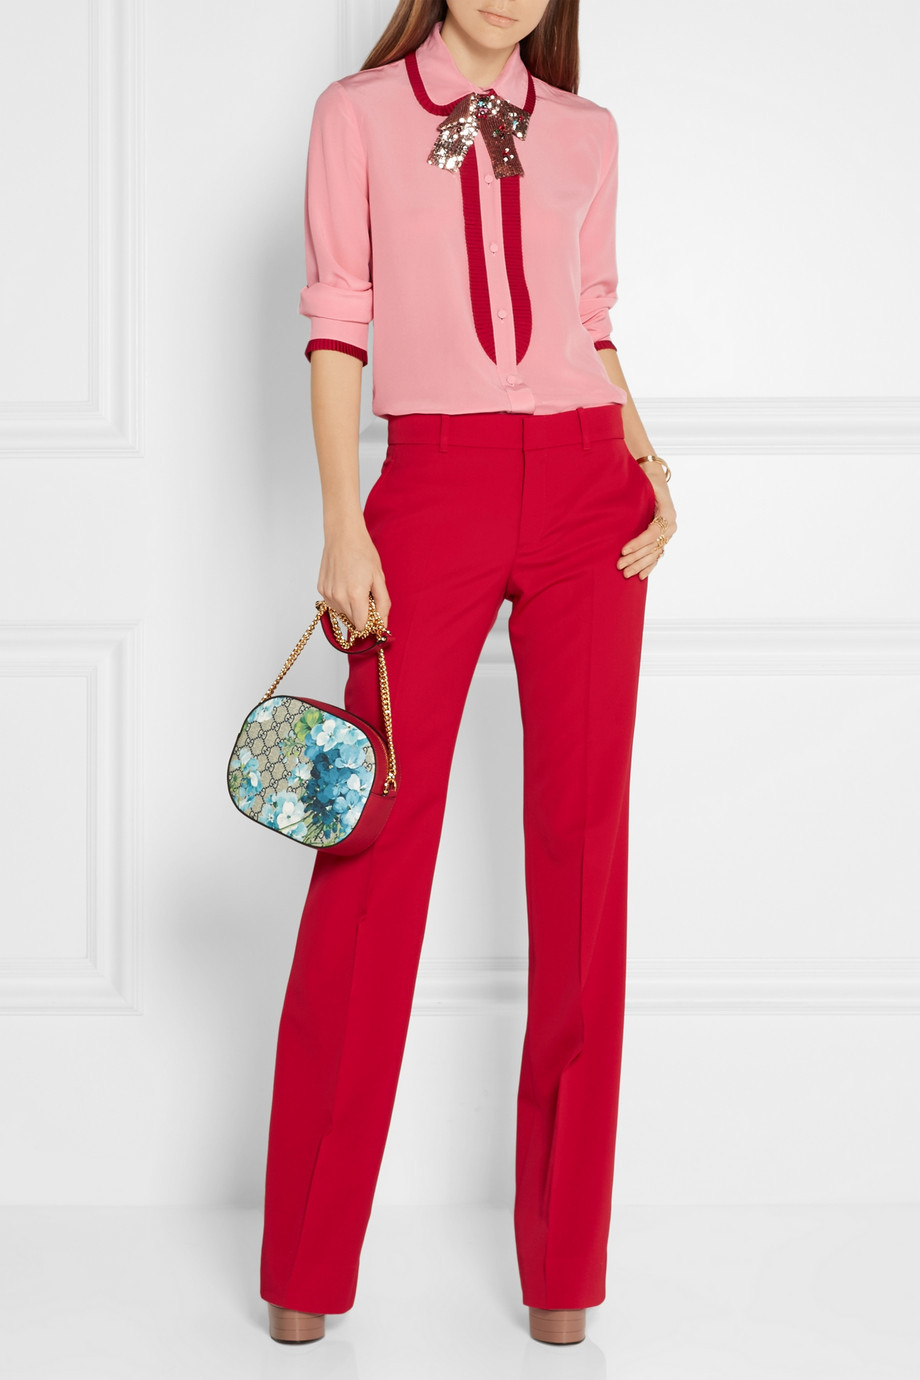 Gucci Grosgrain-trimmed silk crepe de chine blouse with Peter Pan collar $1,390